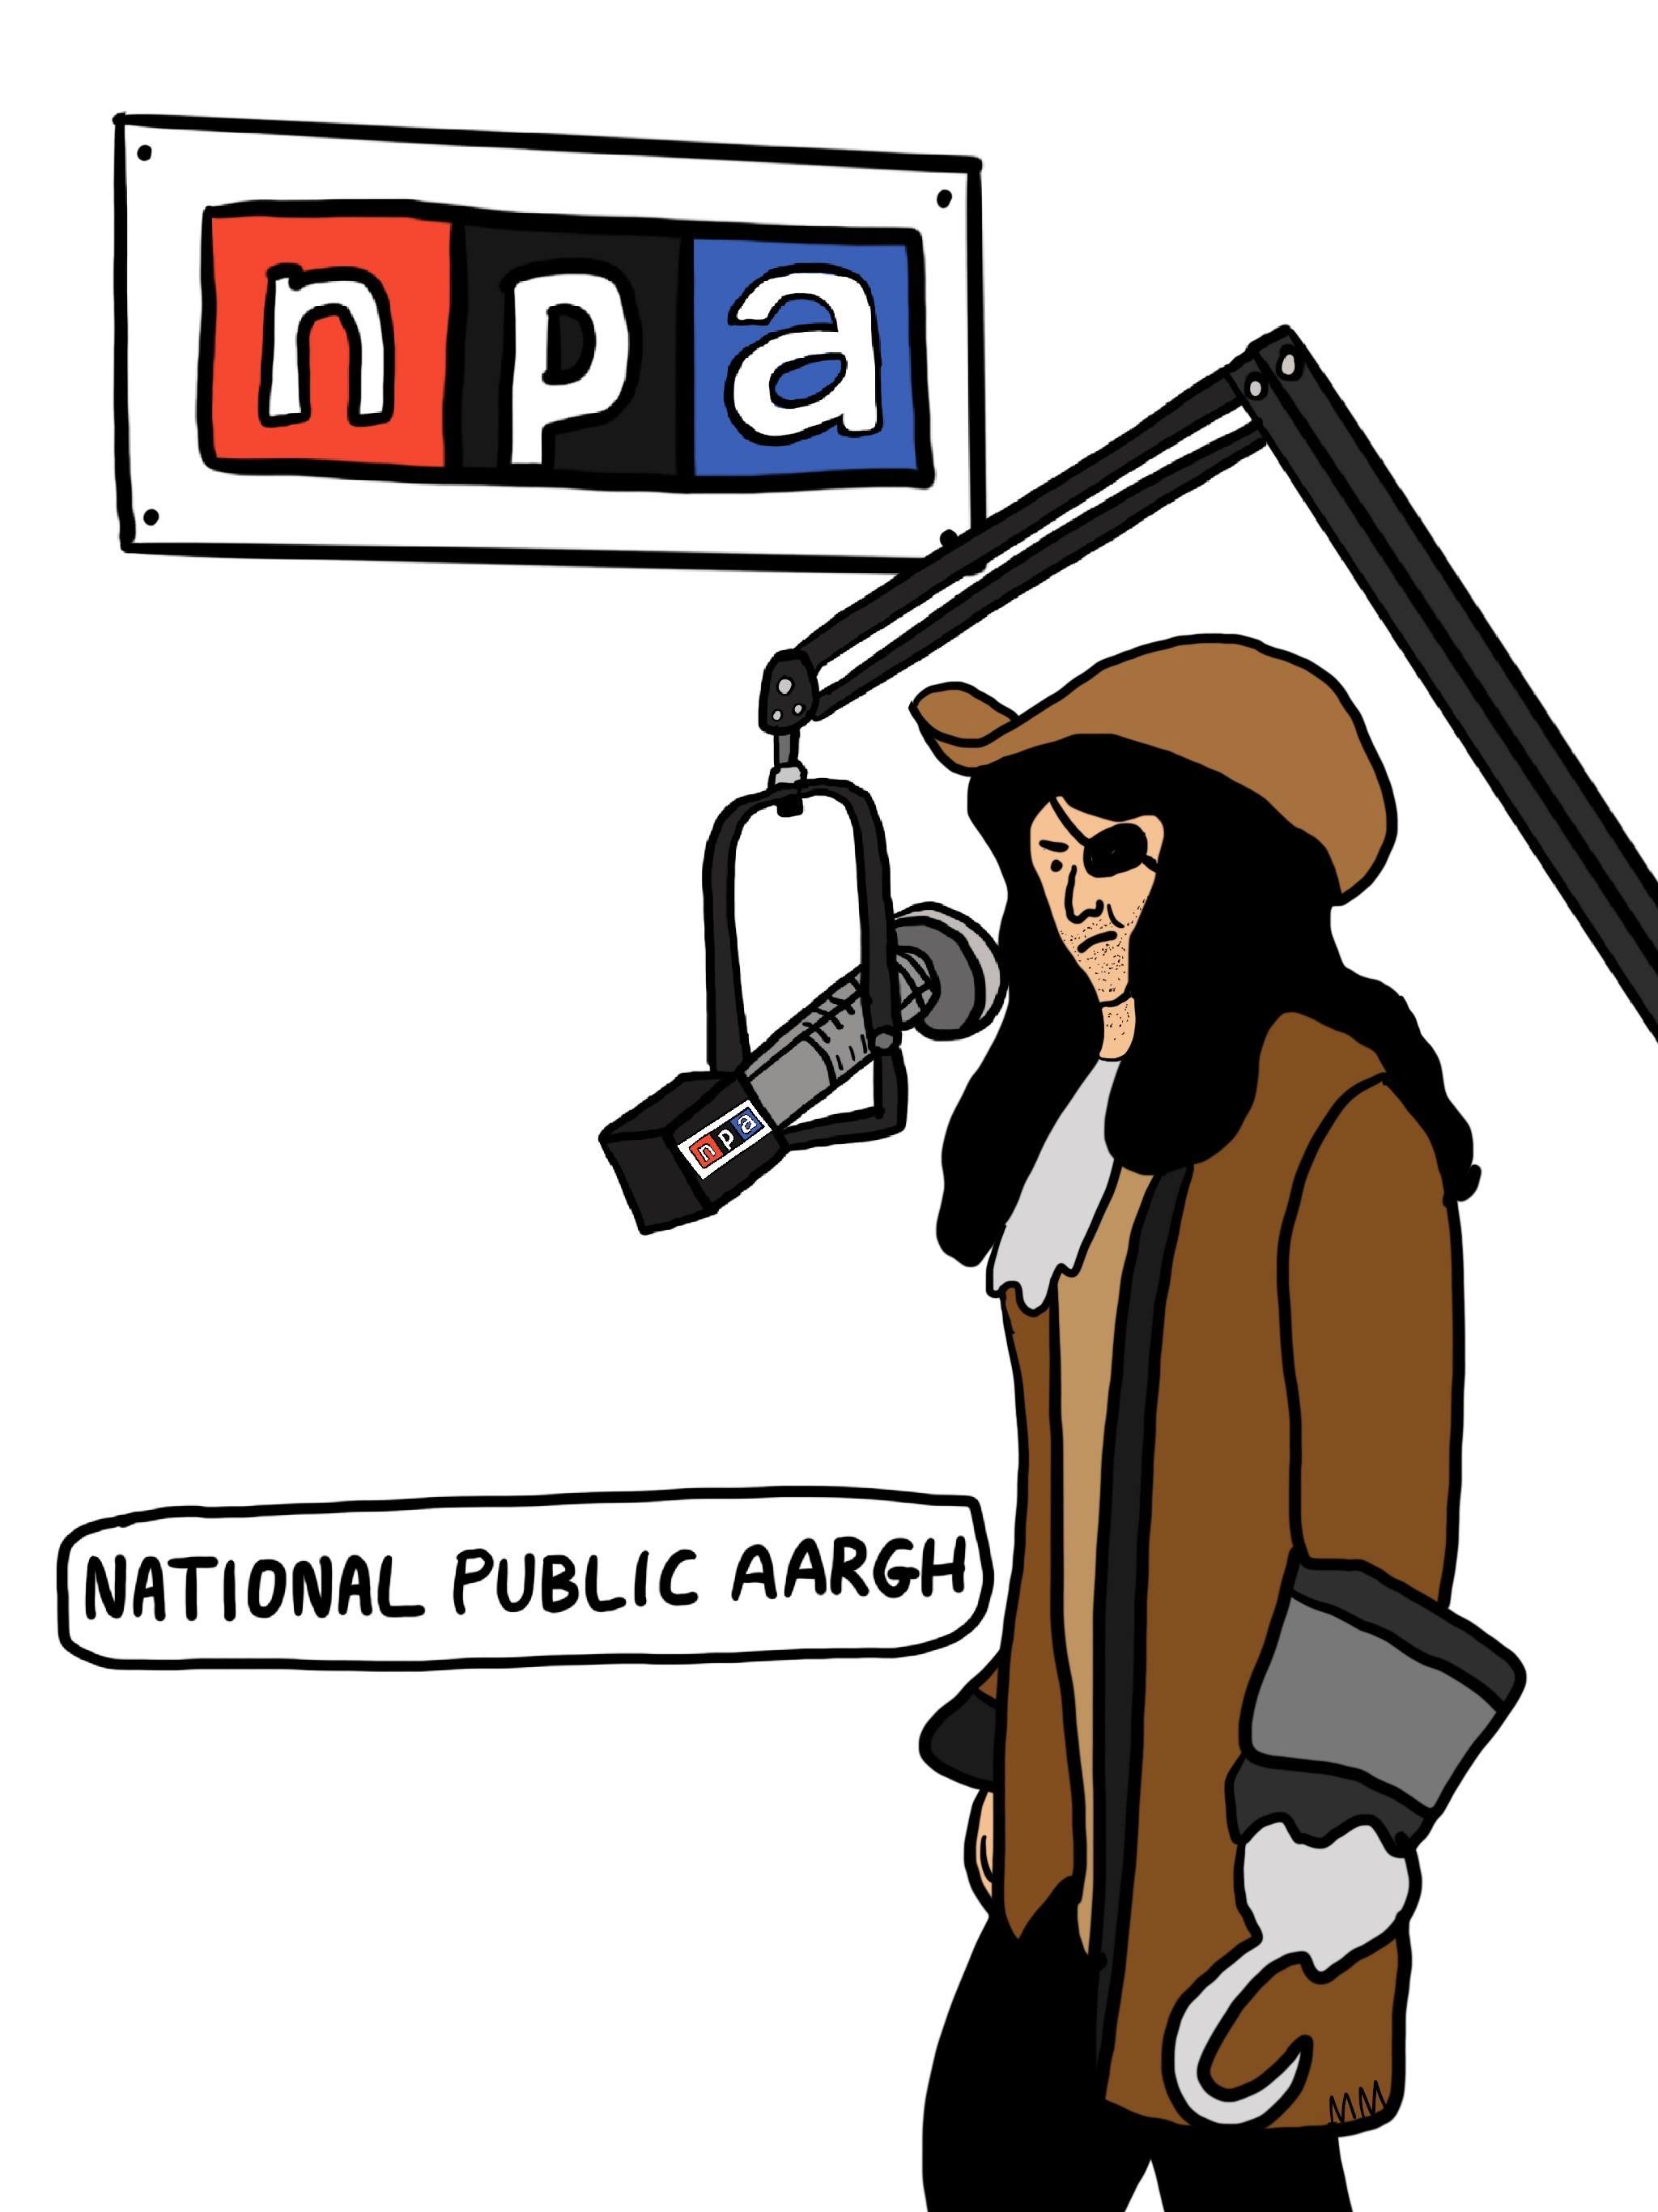 National Public Aargh